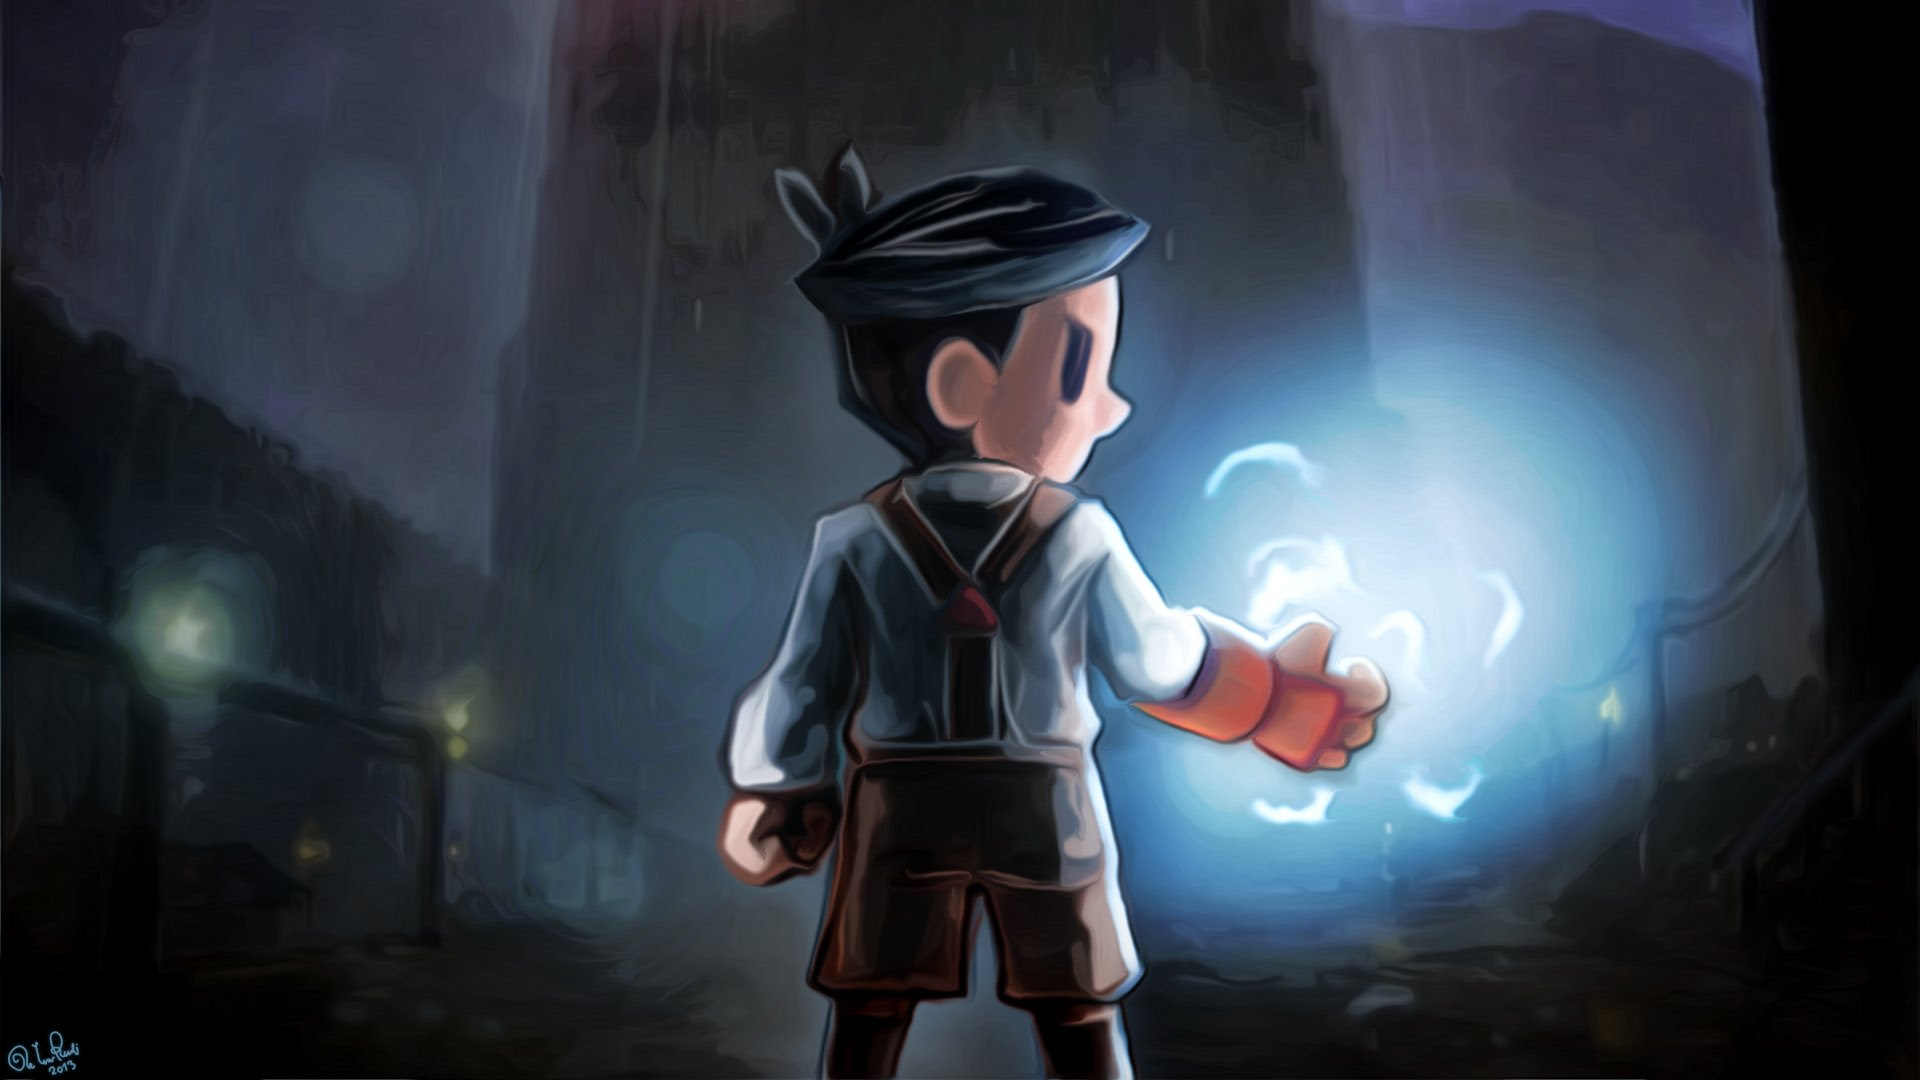 Somehow the Wii U version of Teslagrad was the most profitable screenshot